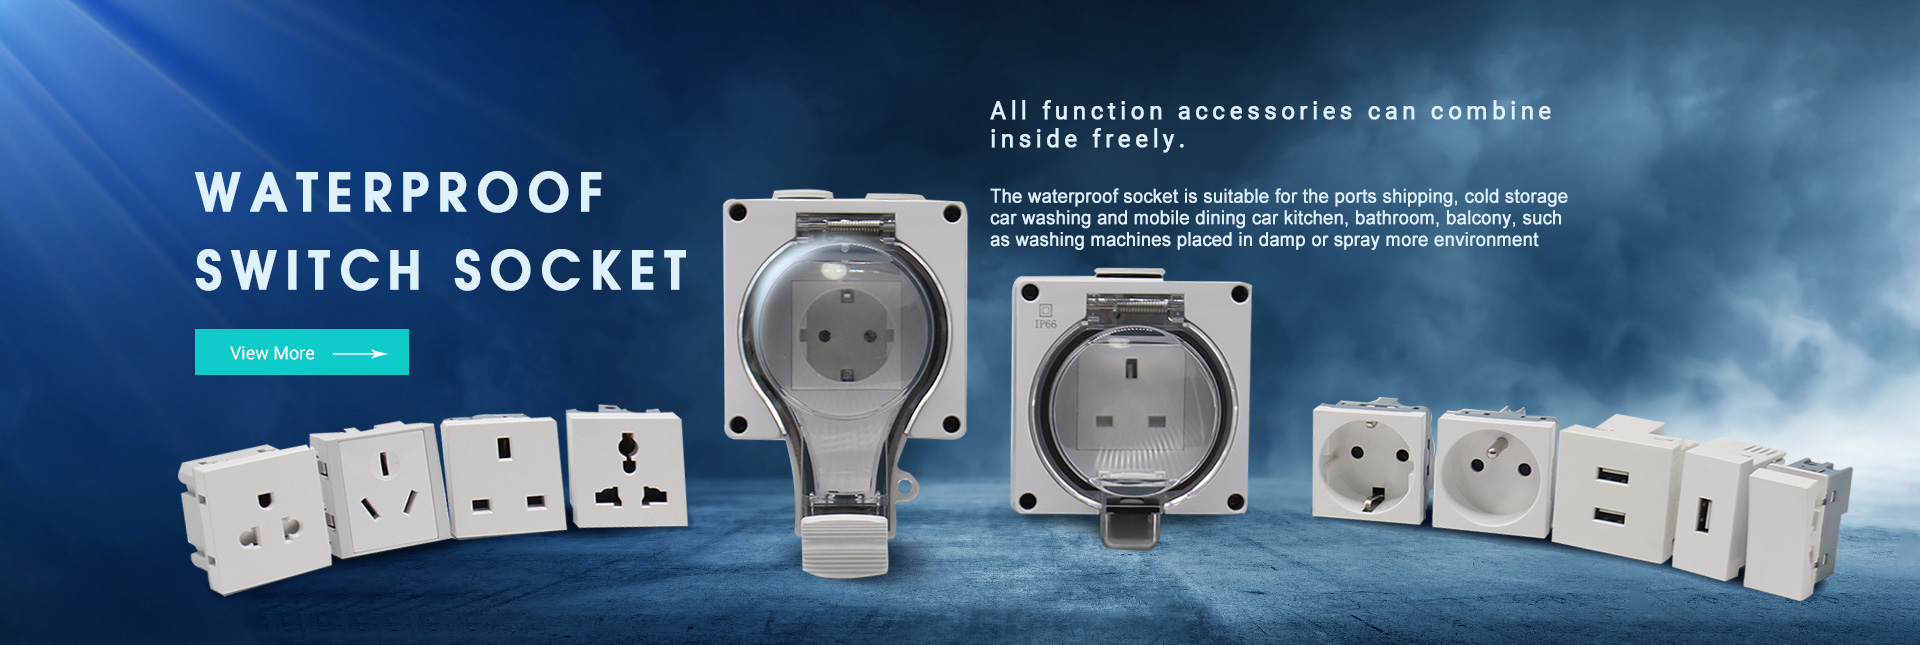 waterproof  switch socket